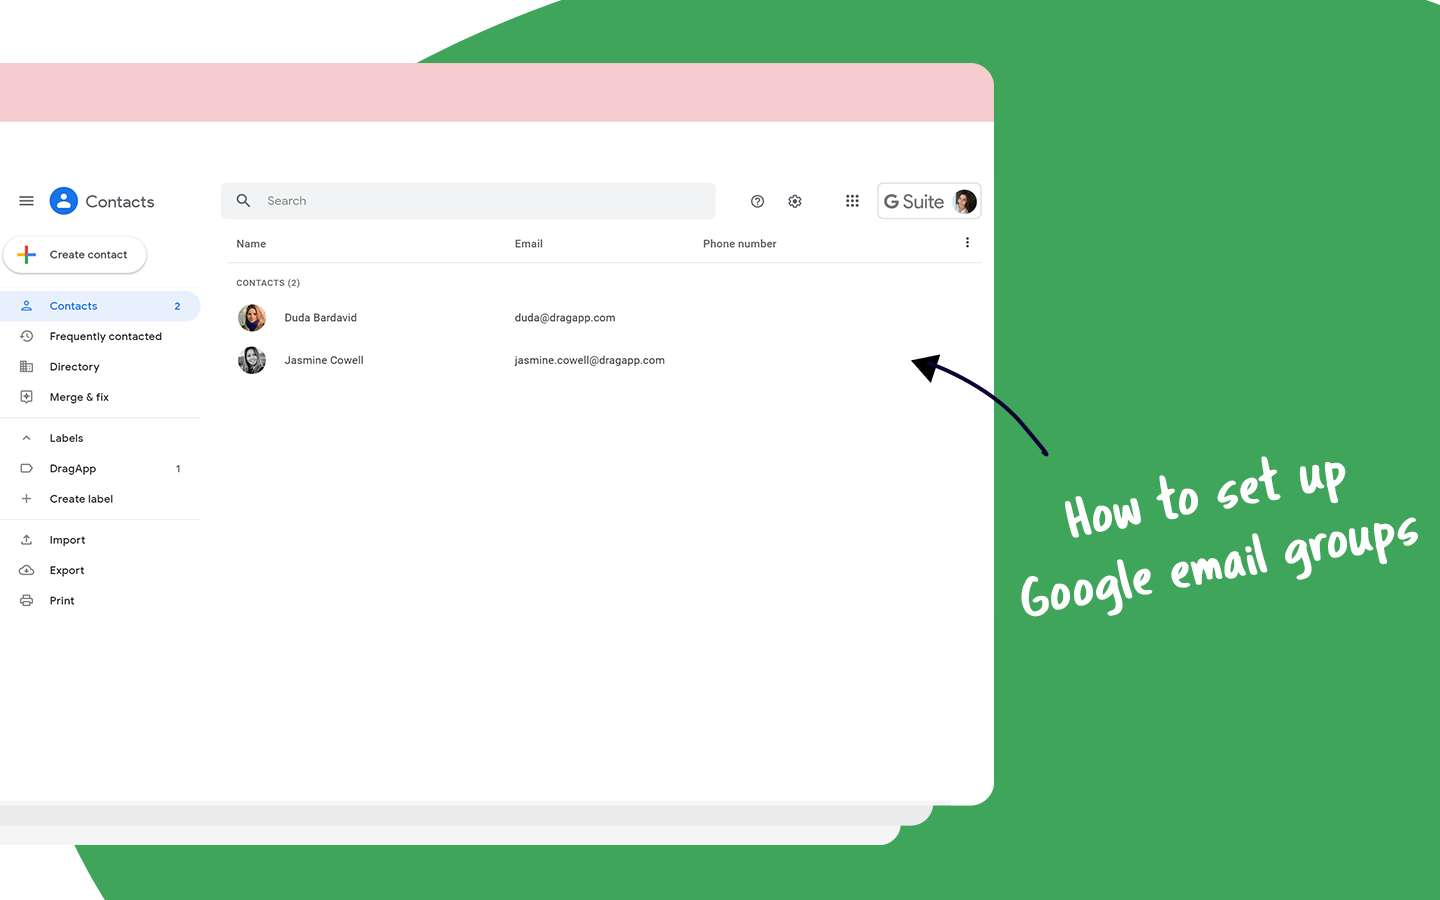 Google Email Groups